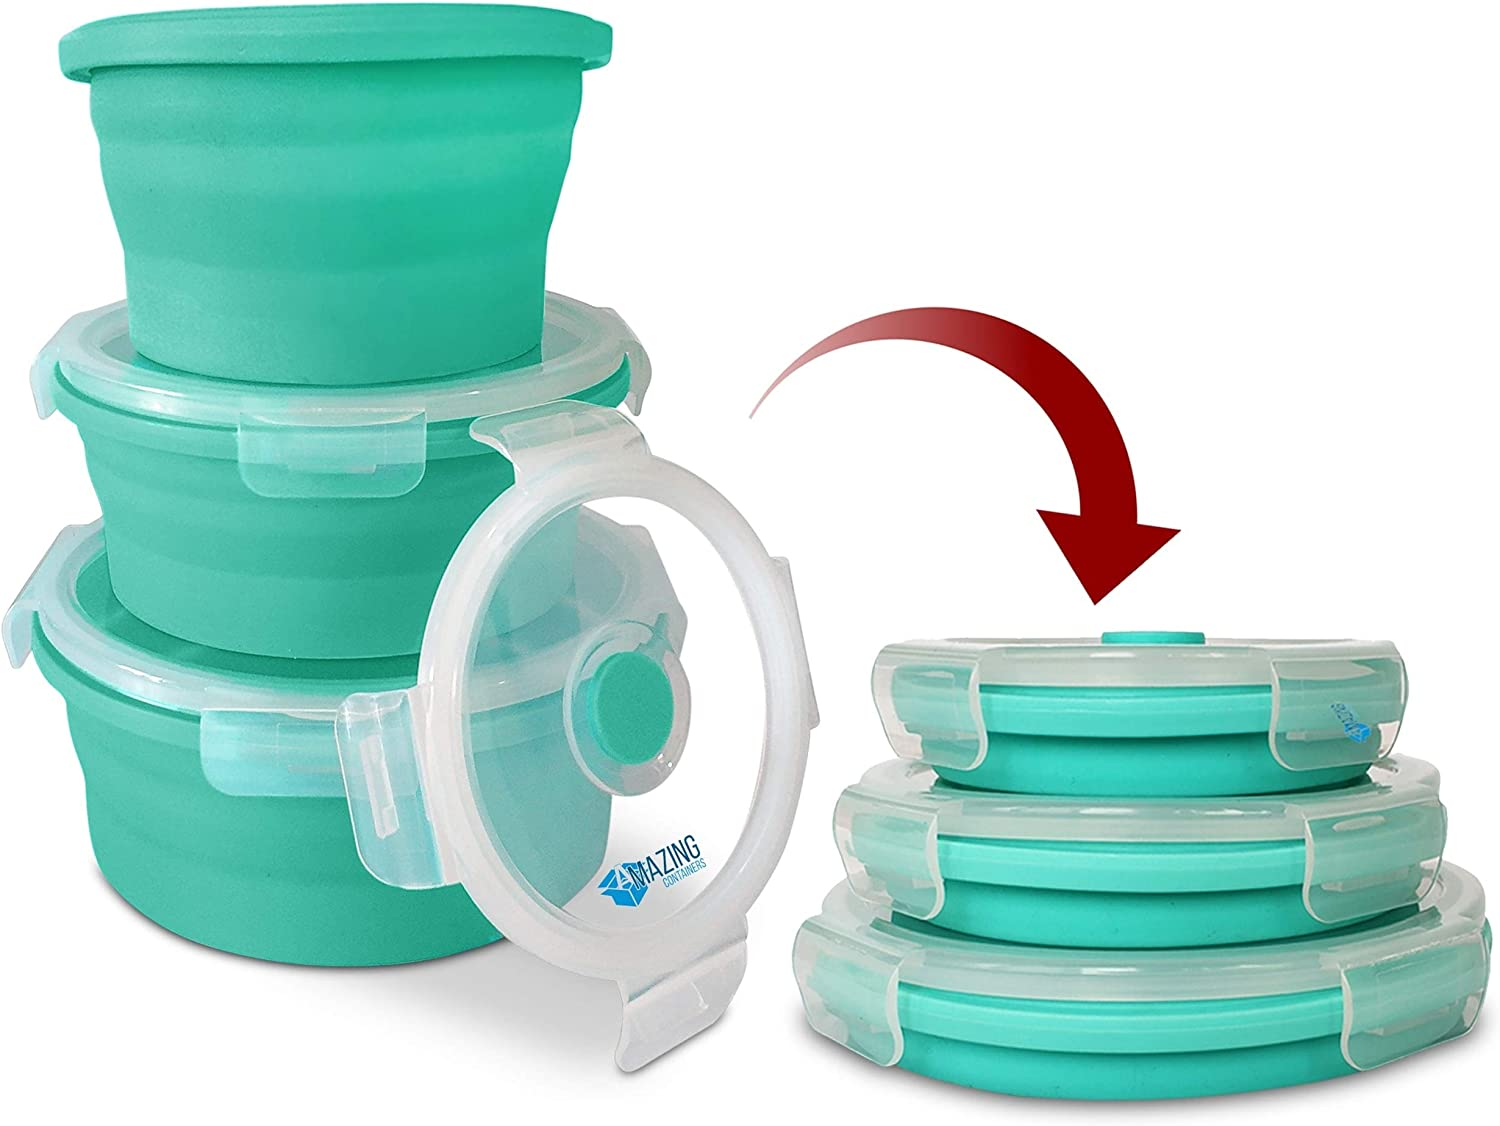 Collapsible Silicone Food Storage Folding Mixing Bowl Containers with Lids - set of 3 Round Expandable Container for Camping,Travel,Hiking-BPA Free, Microwave, Dishwasher and Freezer Safe(Mint Green)